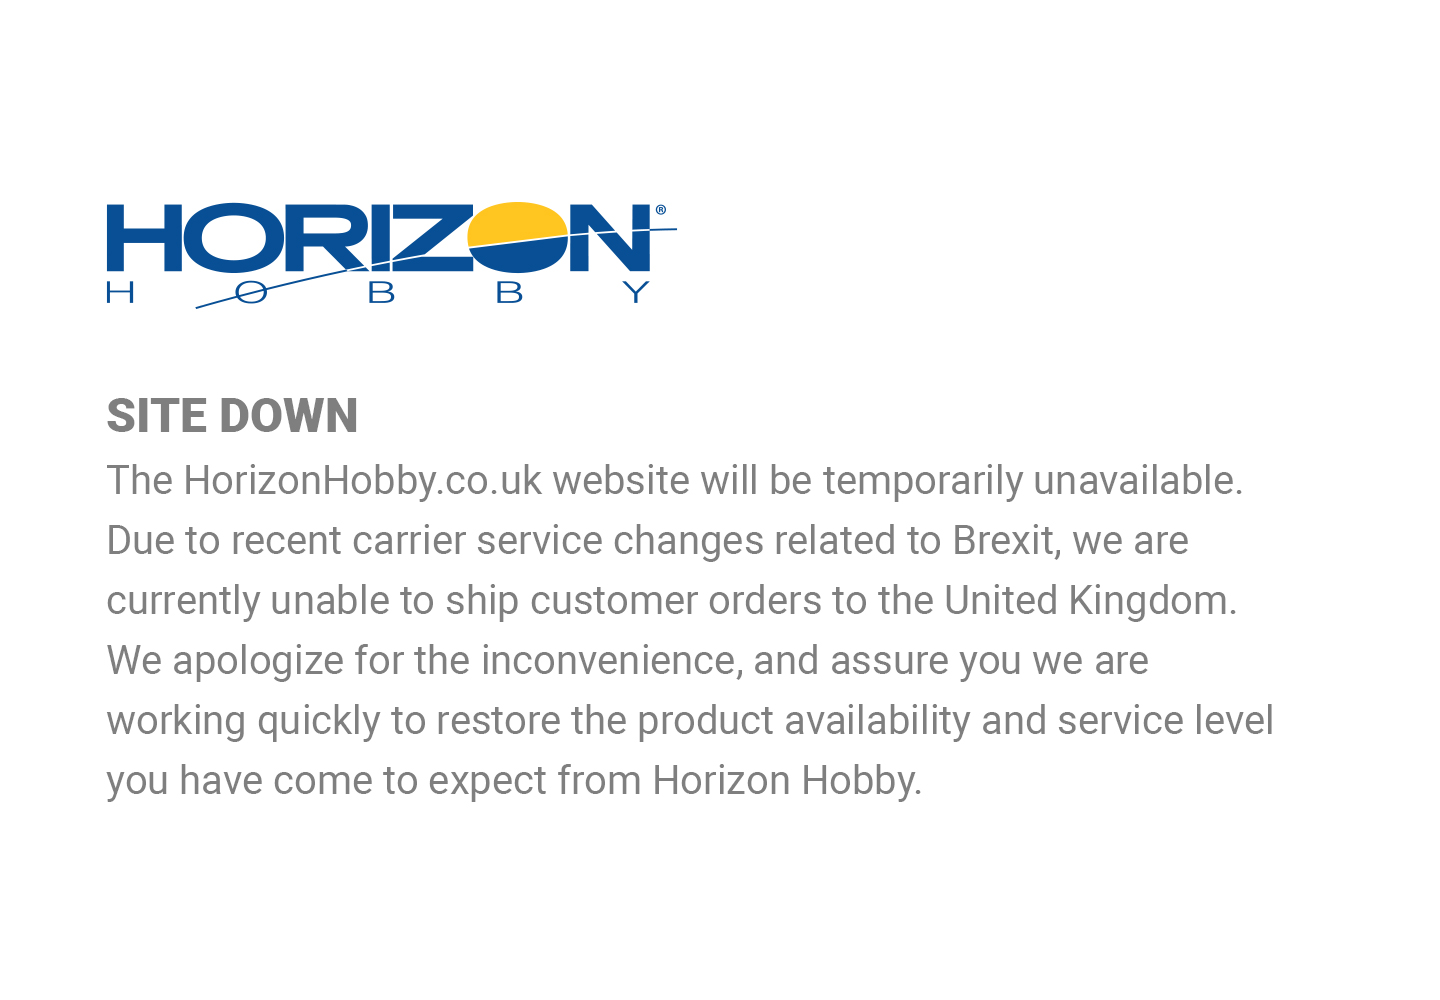 The HorizonHobby.co.uk website will be temporarily unavailable. Due to recent carrier service changes related to Brexit, we are currently unable to ship to customer orders to the United Kingdom.